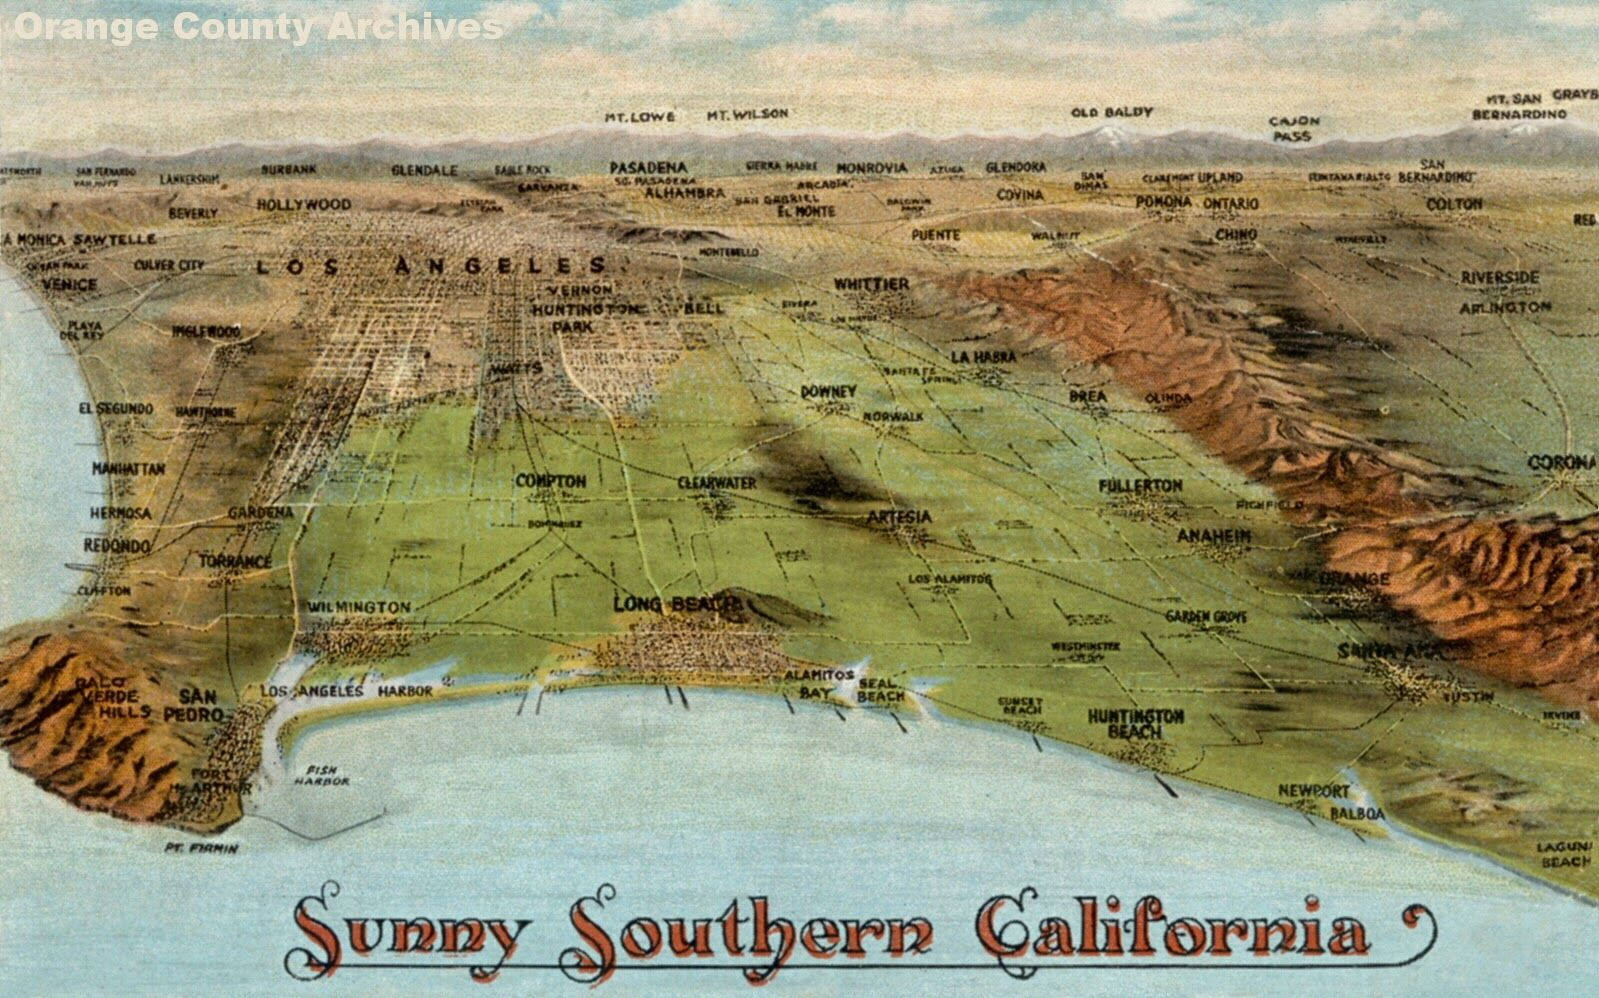 OC History RoundupEarly 1920s Southern California postcard